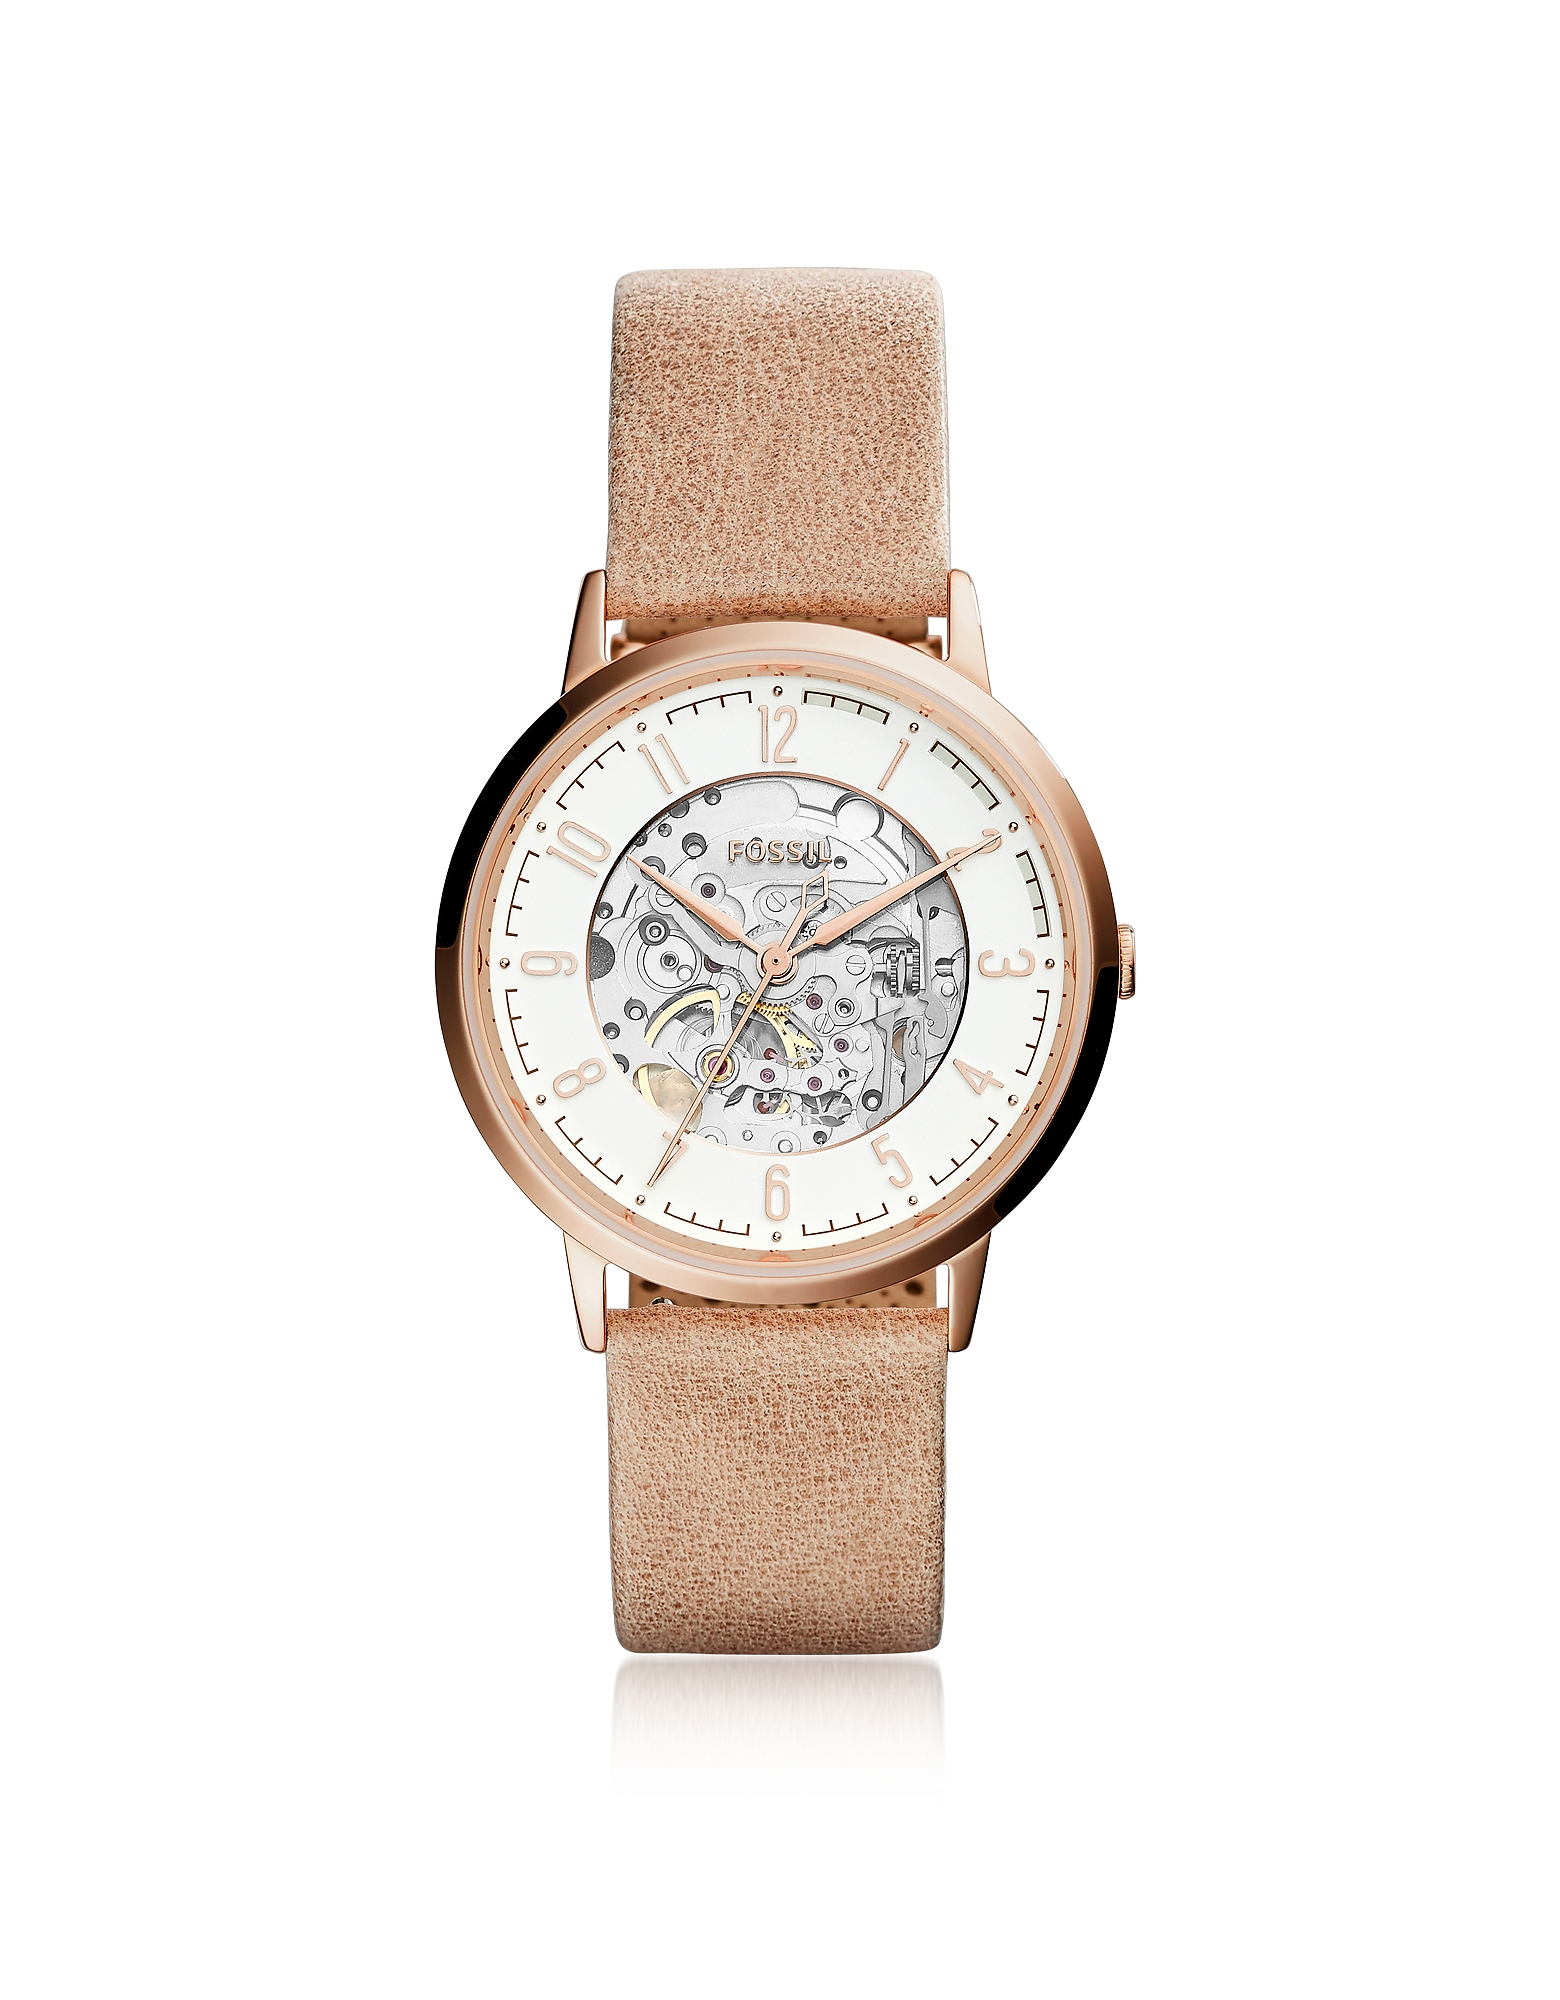 Vintage Muse Automatic Women's Watch